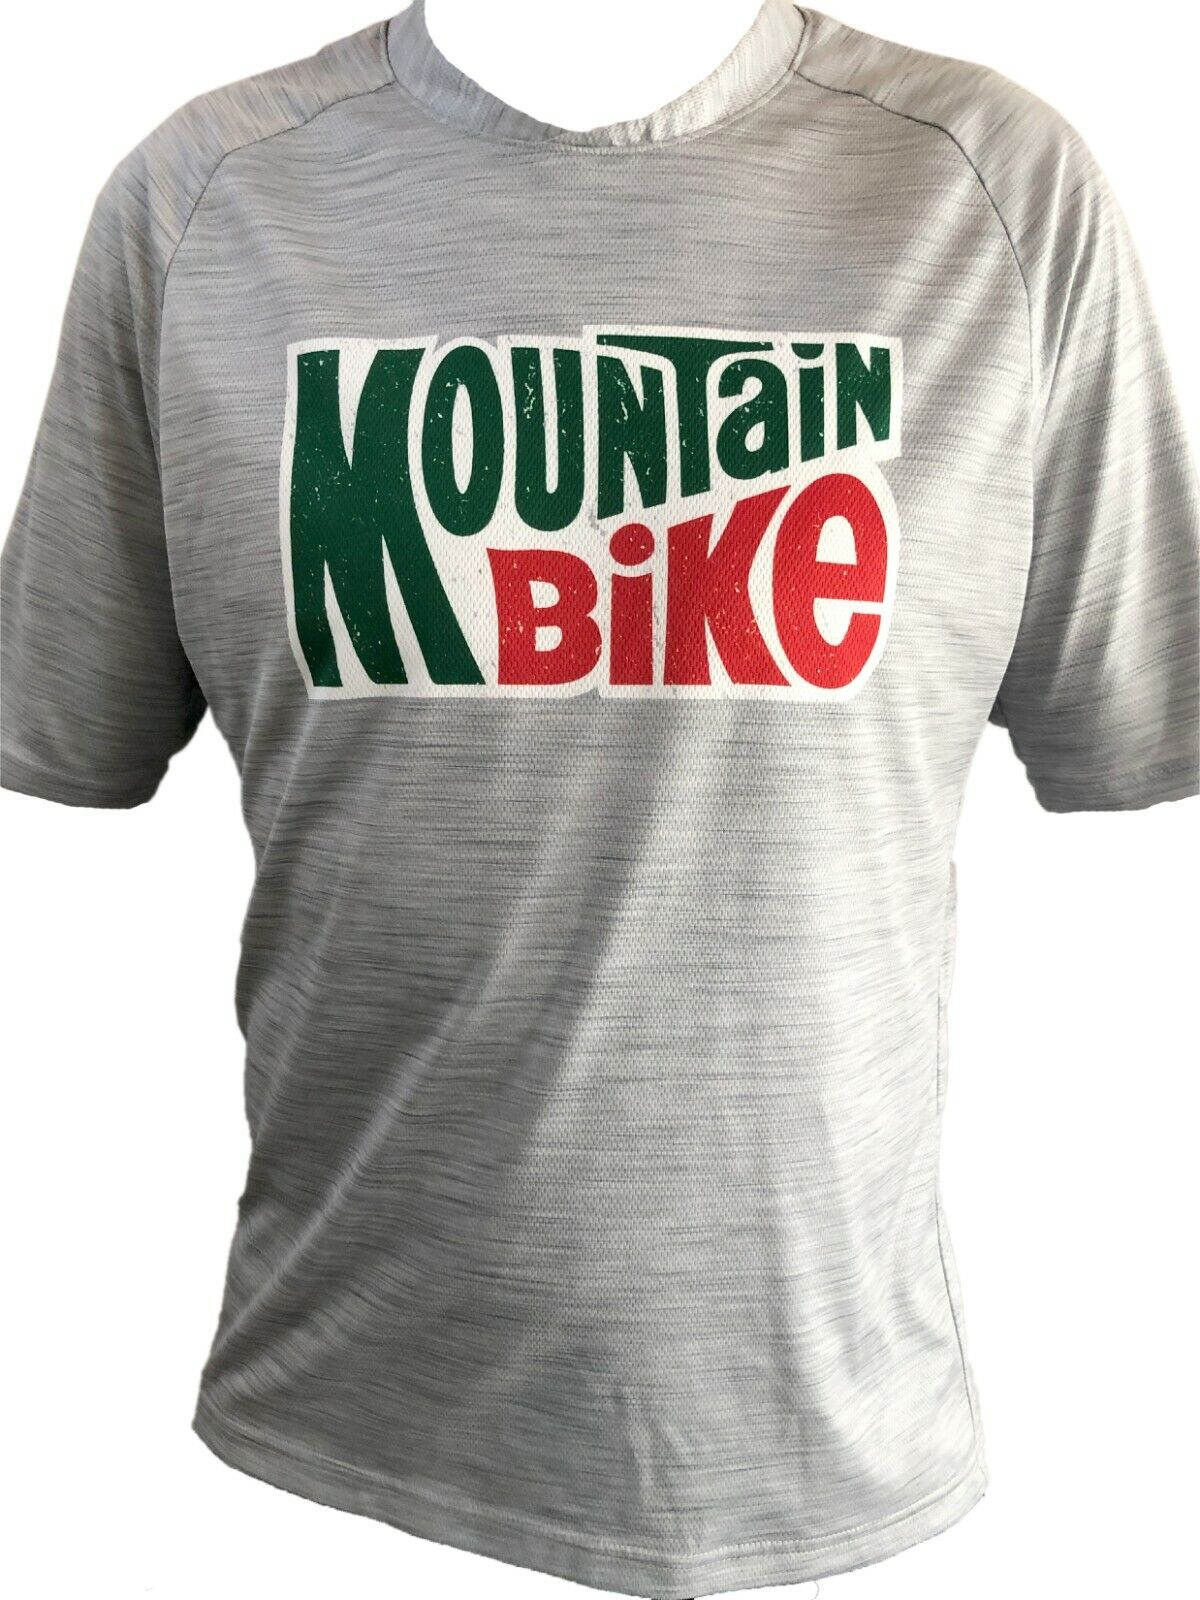 Custom Mountain Bike Jersey by Giro-Size XLarge- Lightweight, breathable, funny. (New with tags - 34.99 USD)